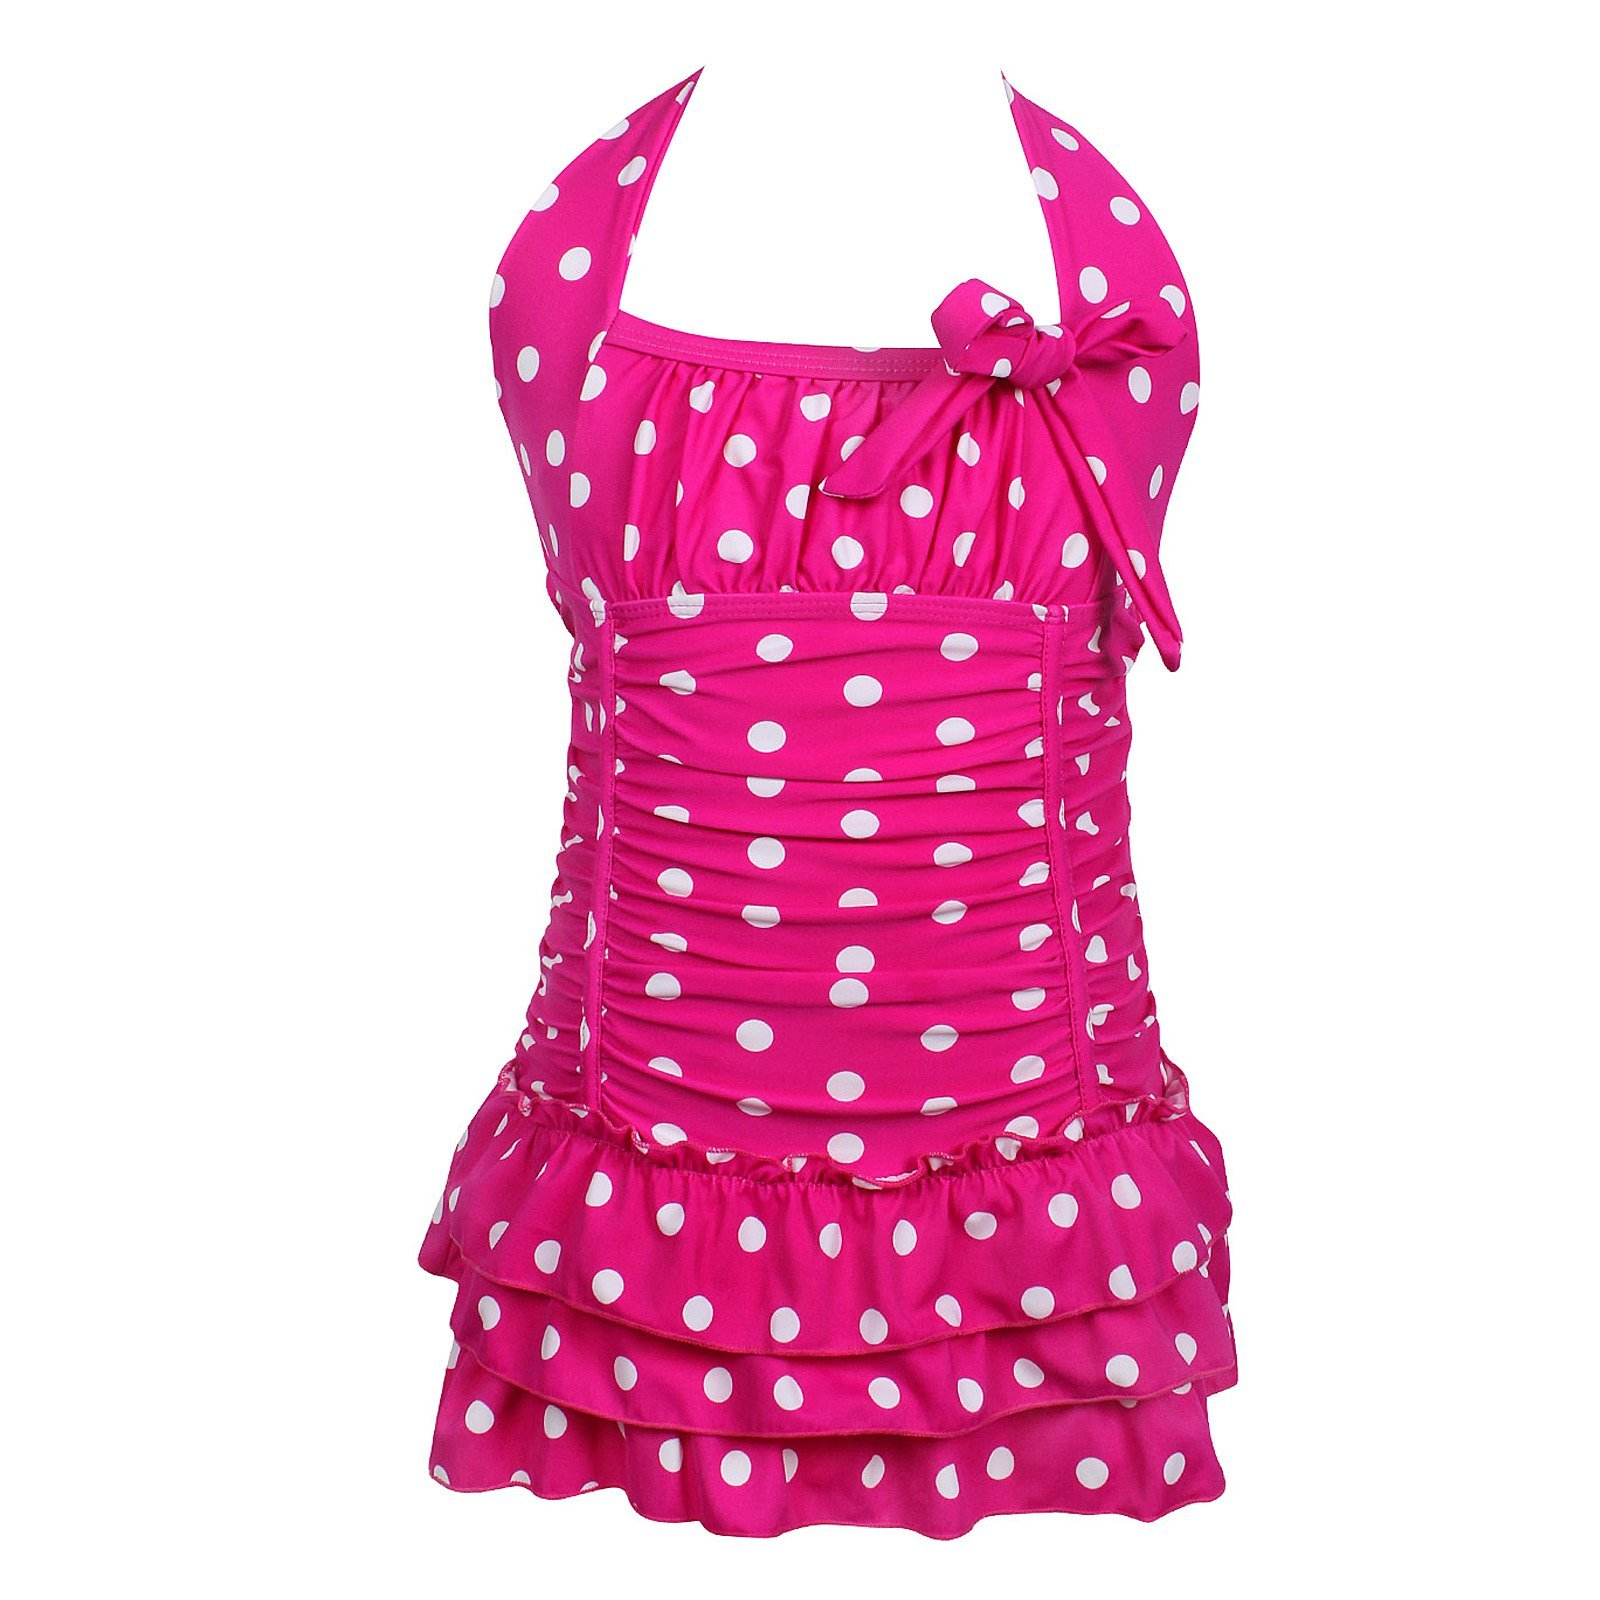 qyqkfly Girls Polka Dot Bathing Suit Adjustable One Piece 4Y-16Y Swimsuit (FBA)